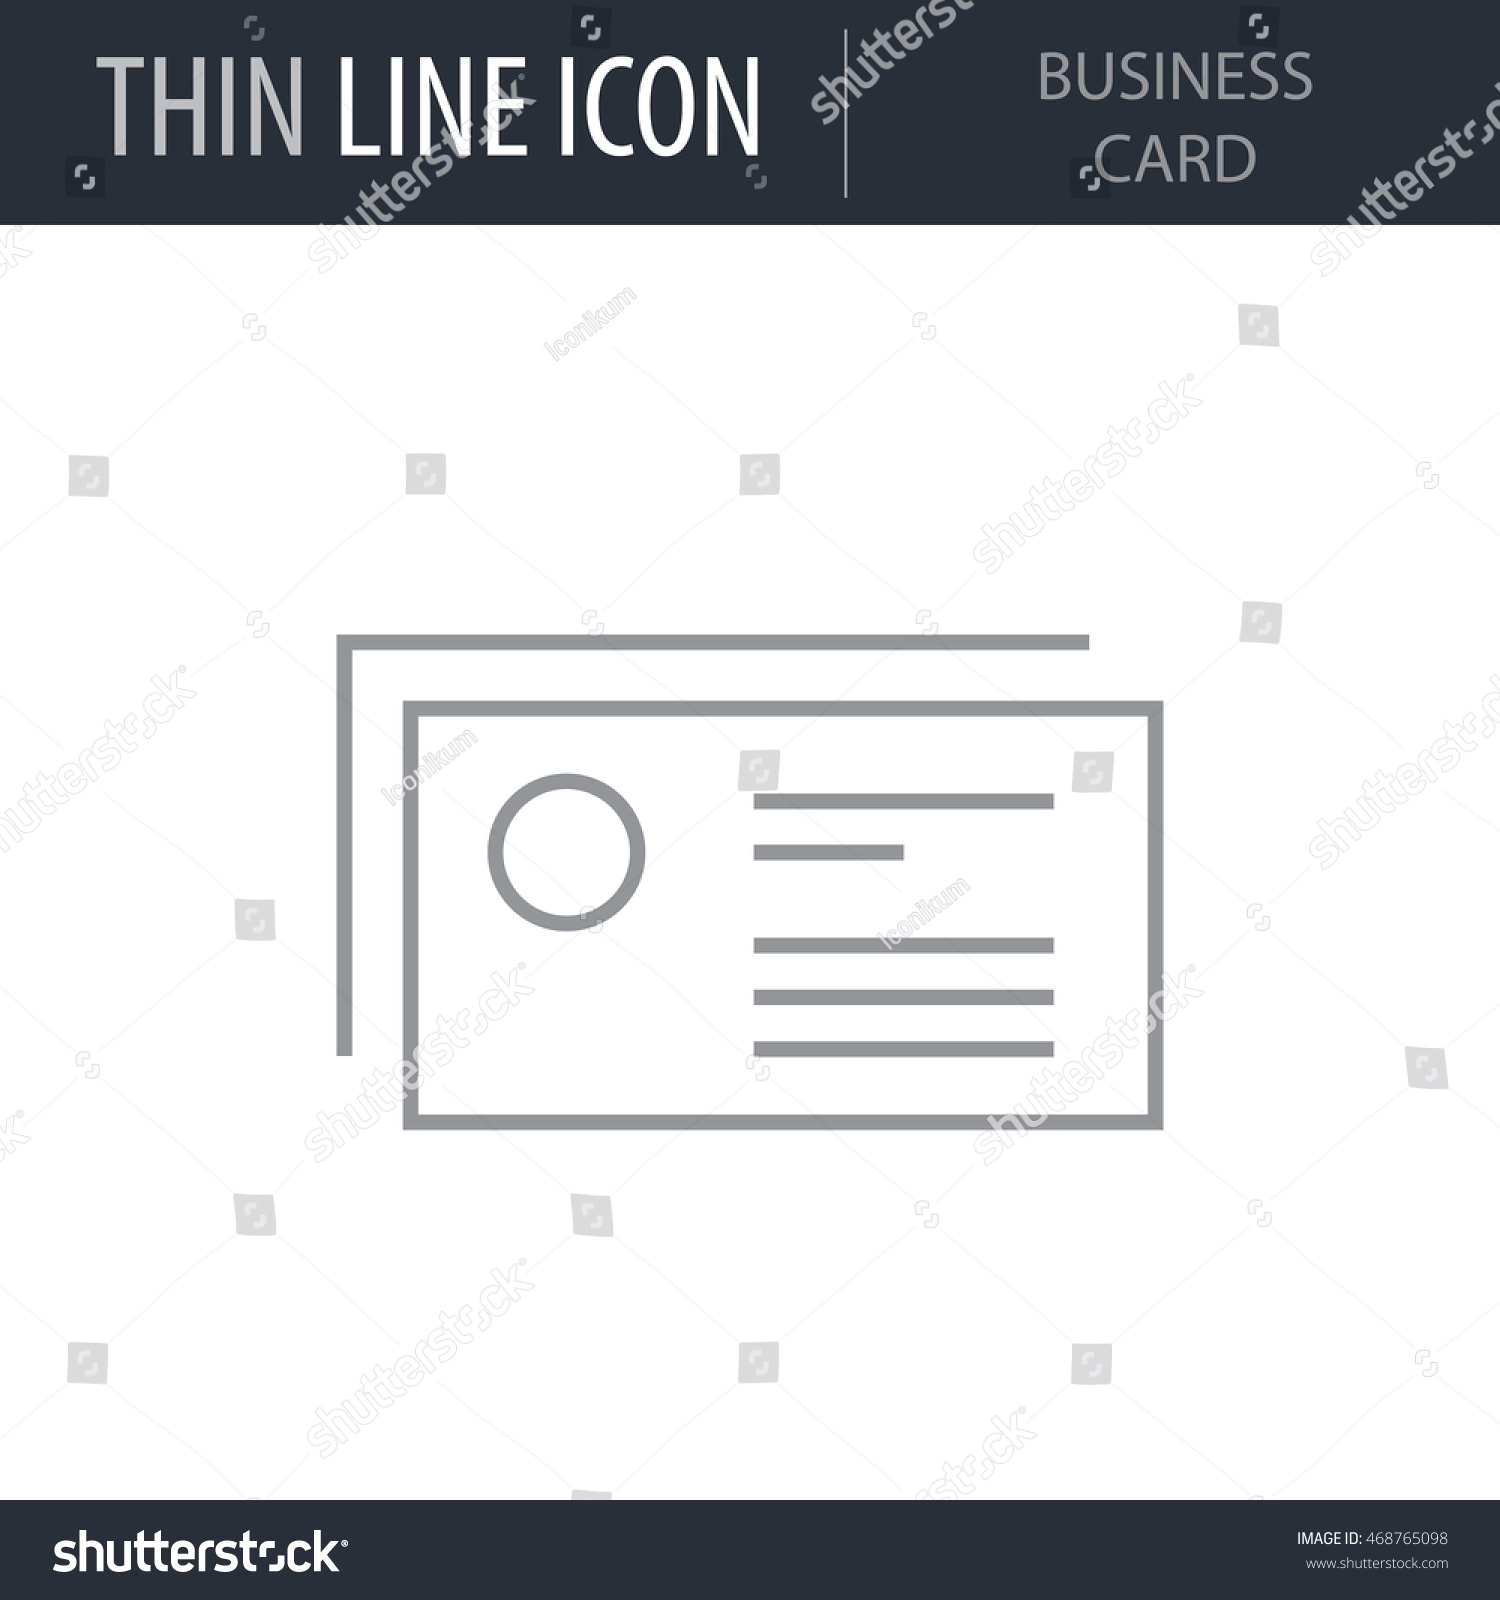 Business Card Outline Icon Thin Line Stock Vector 468765098 ...